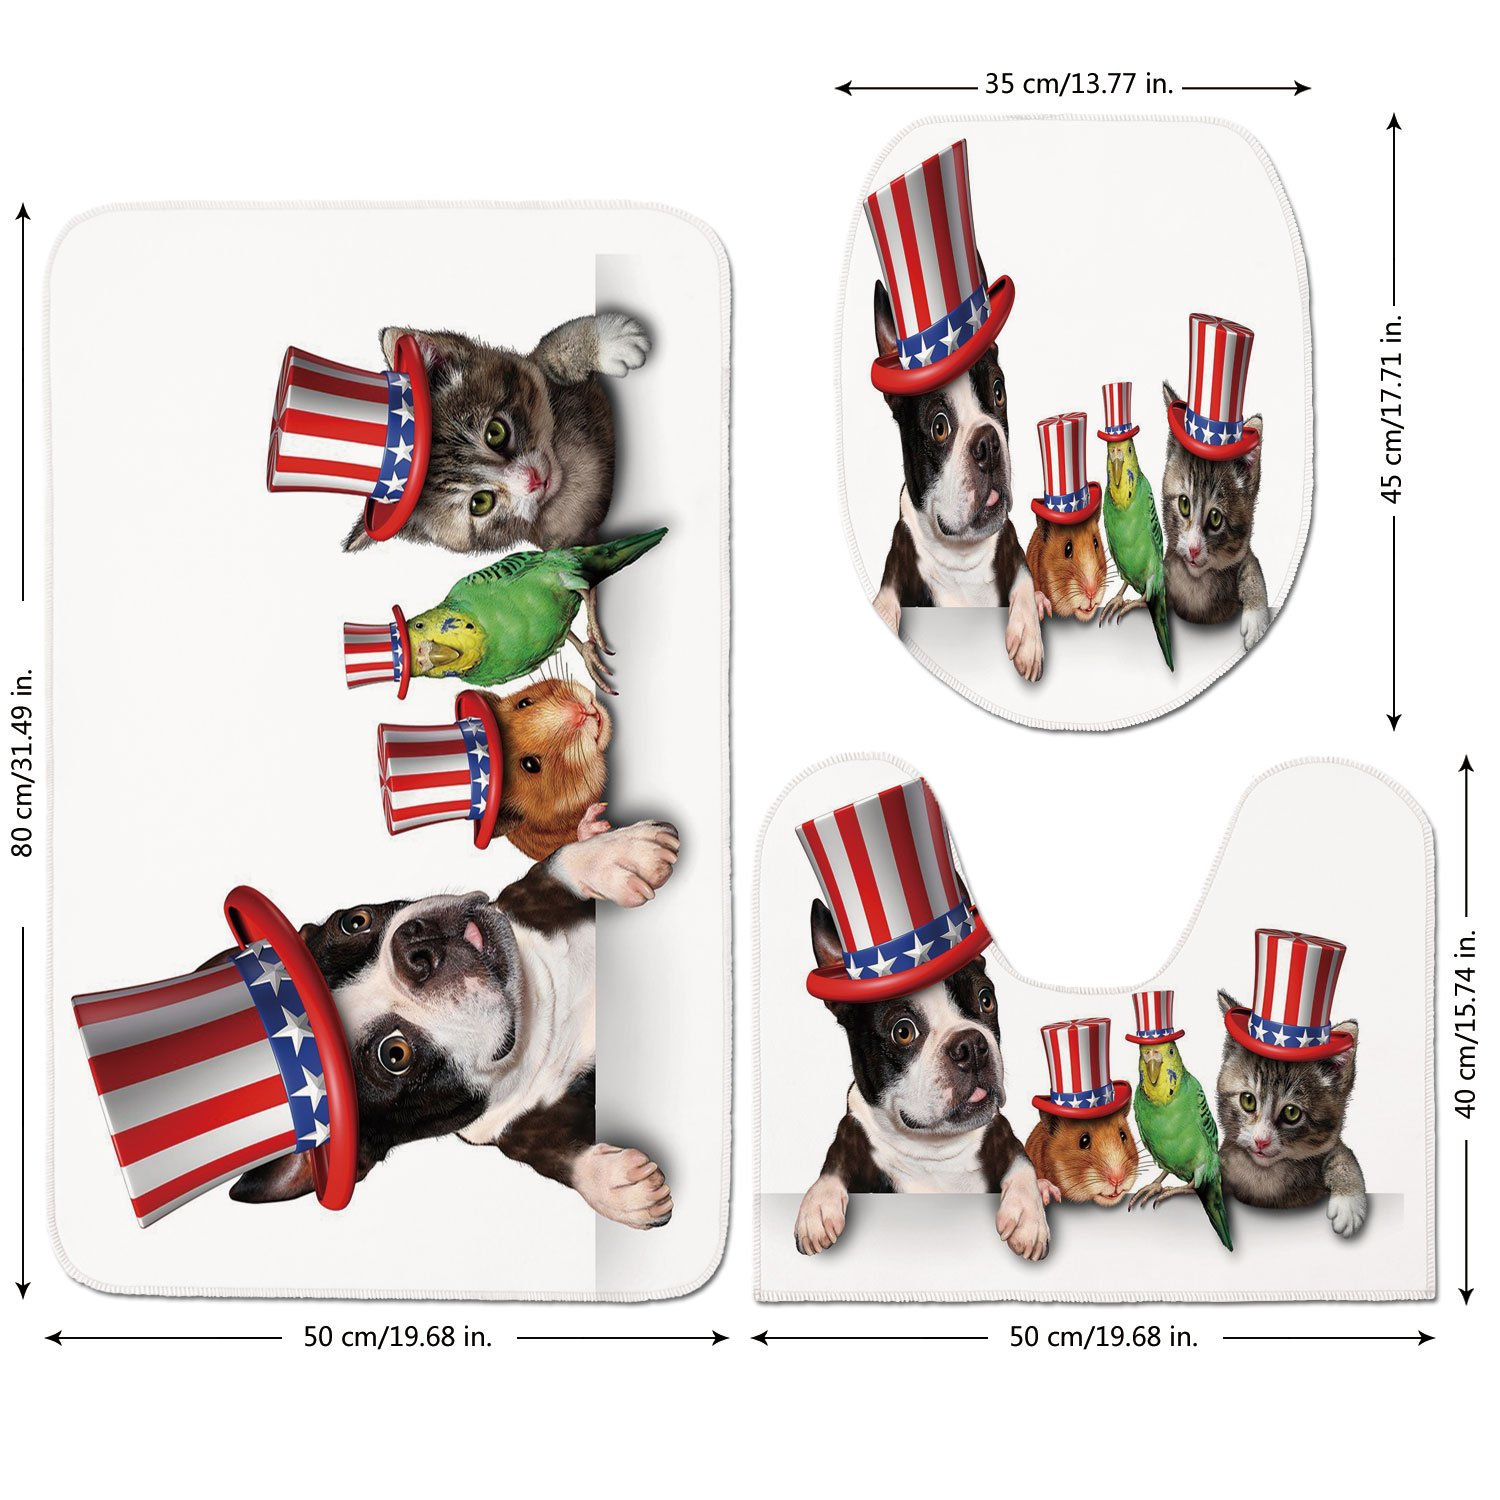 3 Piece Bathroom Mat Set,Fourth-of-July,Cute-Pet-Animal-Dog-Cat-Bird-and-Hamster-with-American-Hat-Celebration-Image-Decorative,Multicolor.jpg,Bath Mat,Bathroom Carpet Rug,Non-Slip